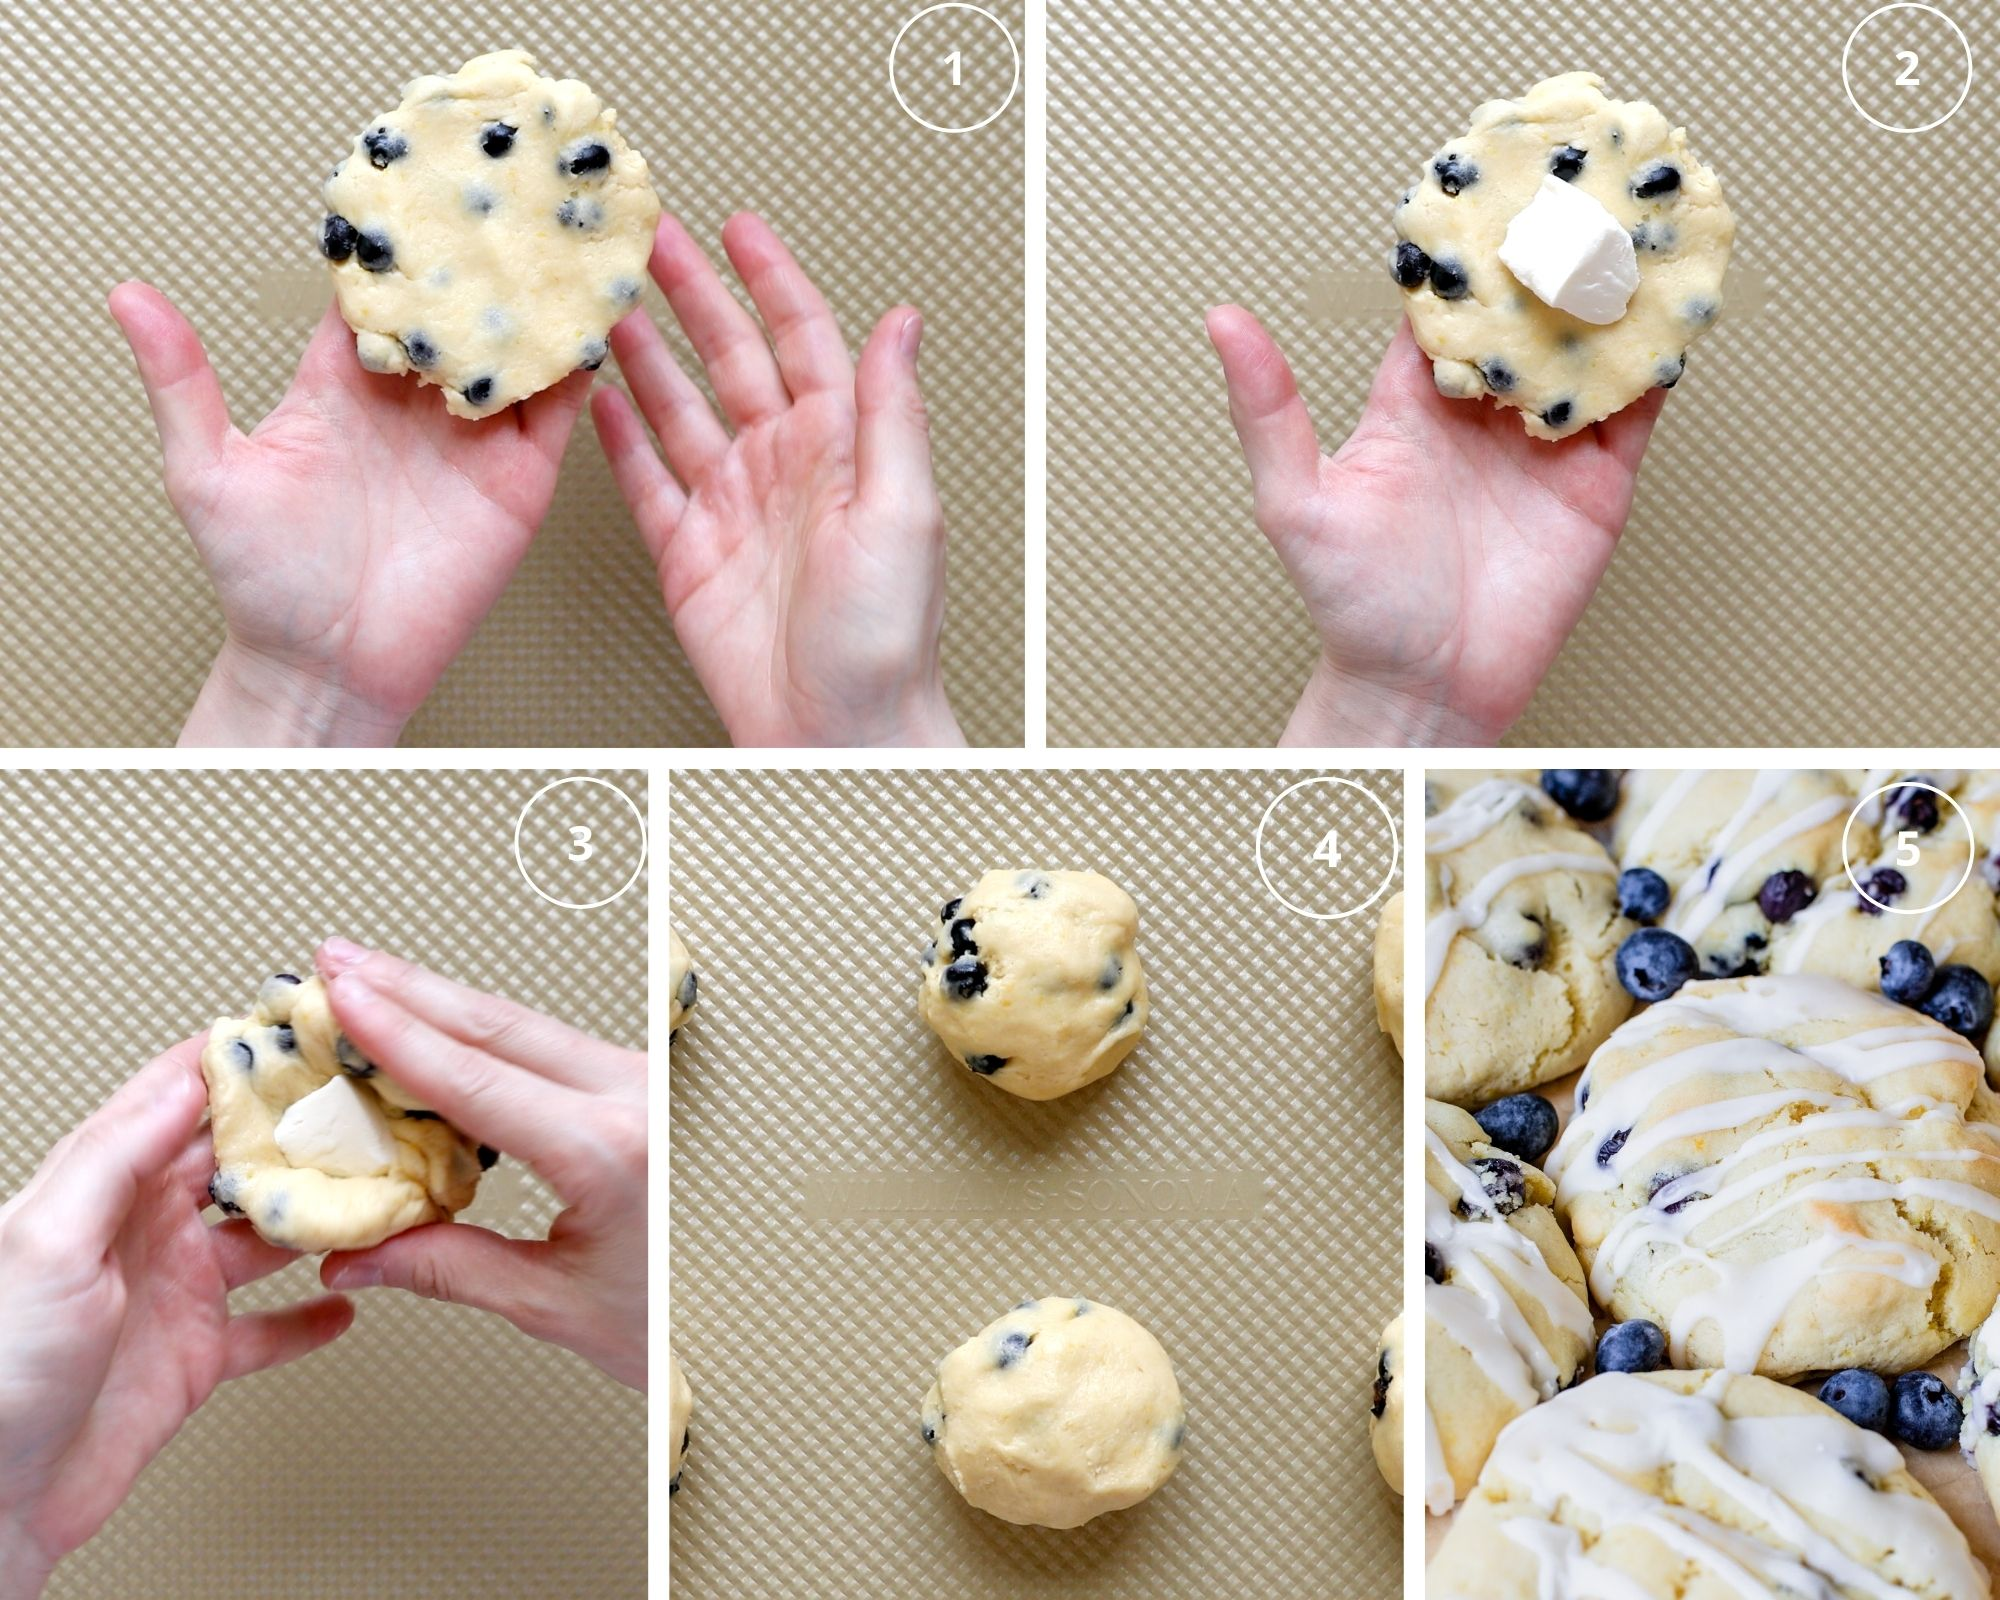 how to put cream cheese in the center of cookies